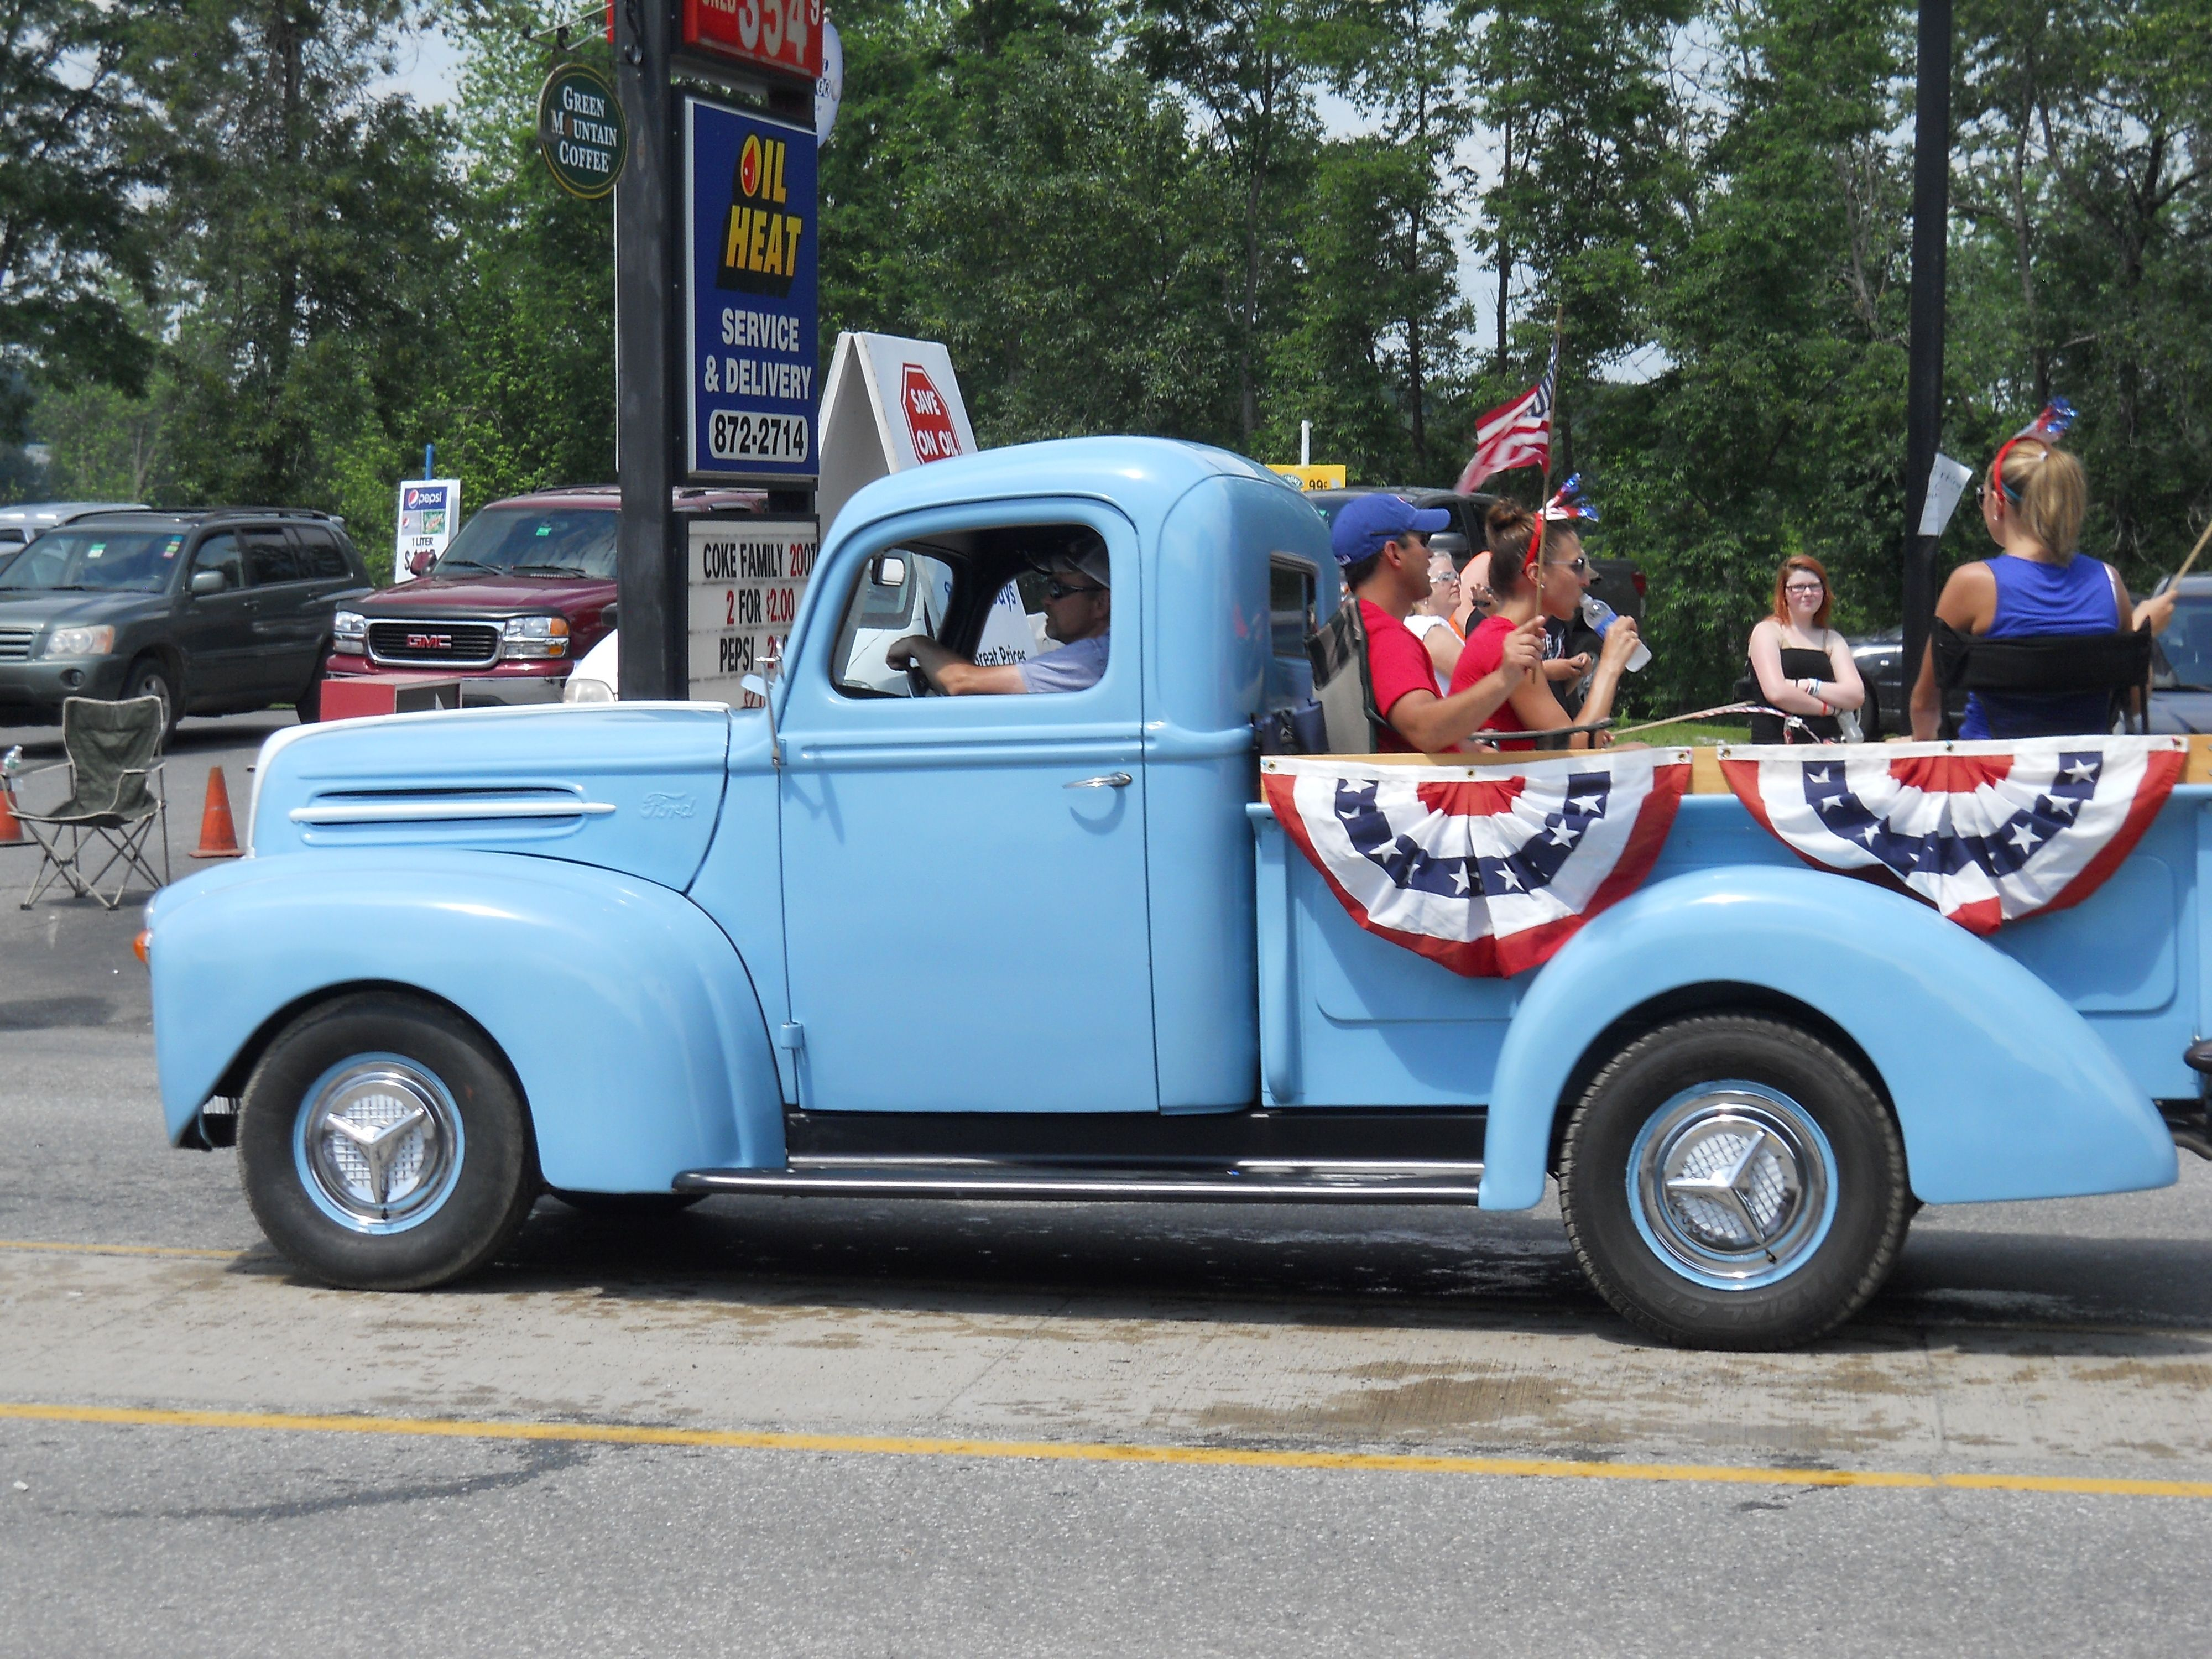 Baby Blue Antique Truck In Parade Https Www Youtube Com User